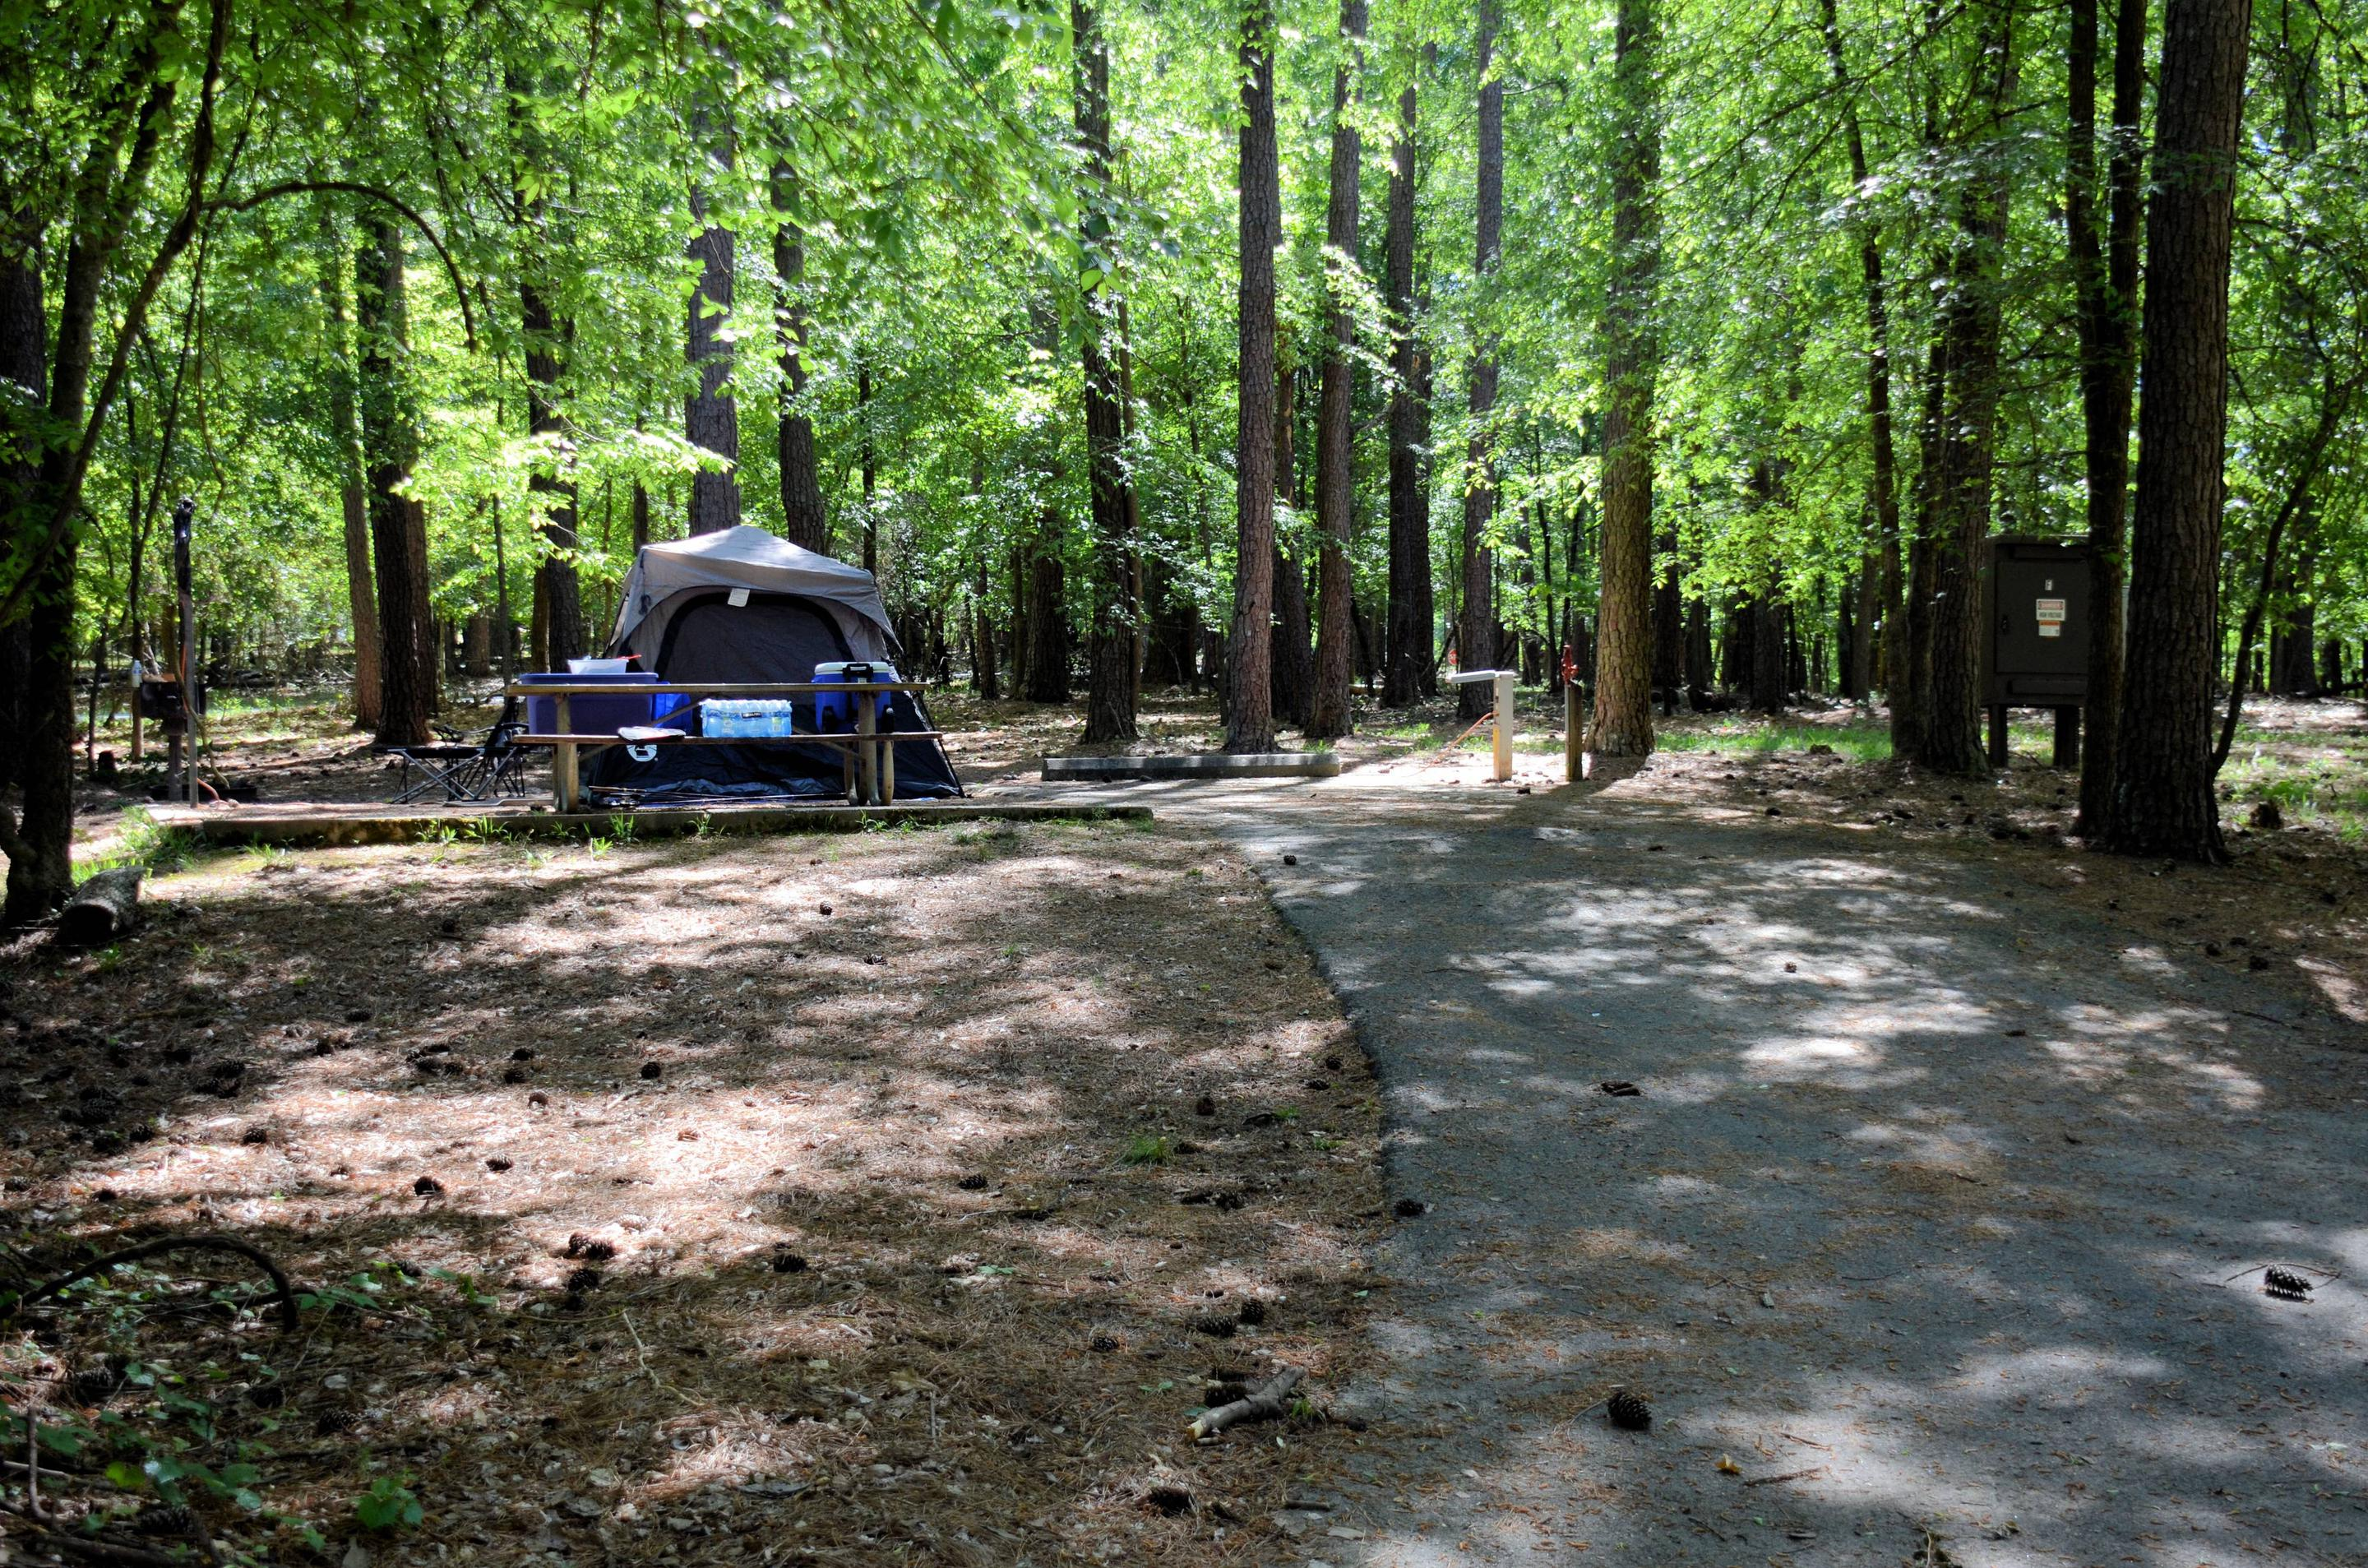 Driveway slope, utilities-side clearance, awning-side clearance.McKinney Campground, campsite 68